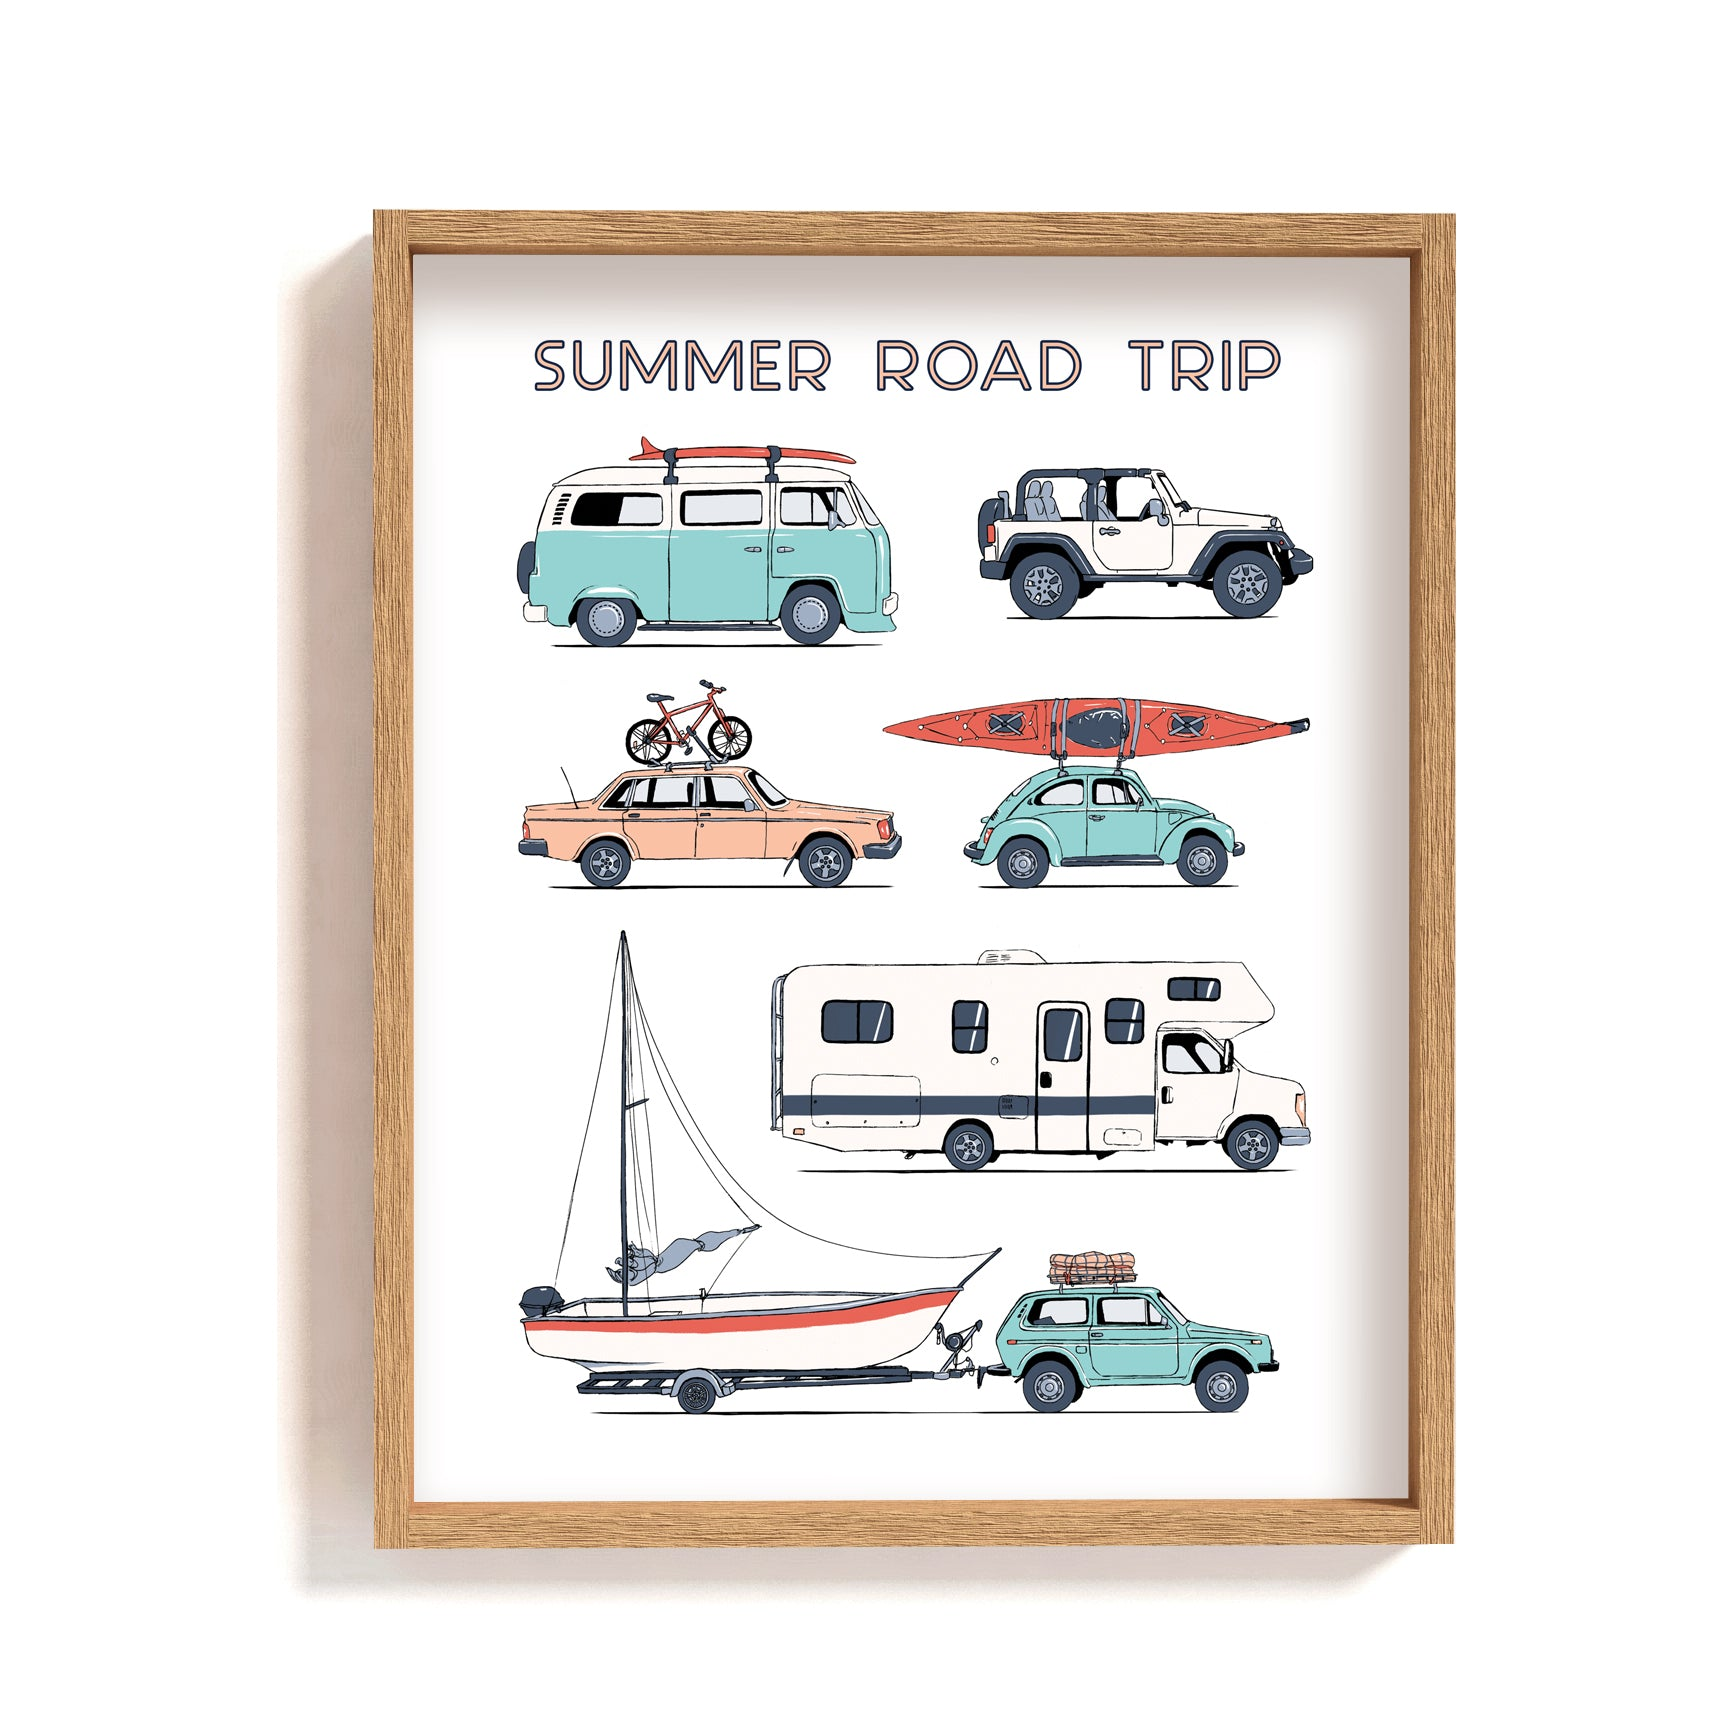 SUMMER ROAD TRIP - Art Print